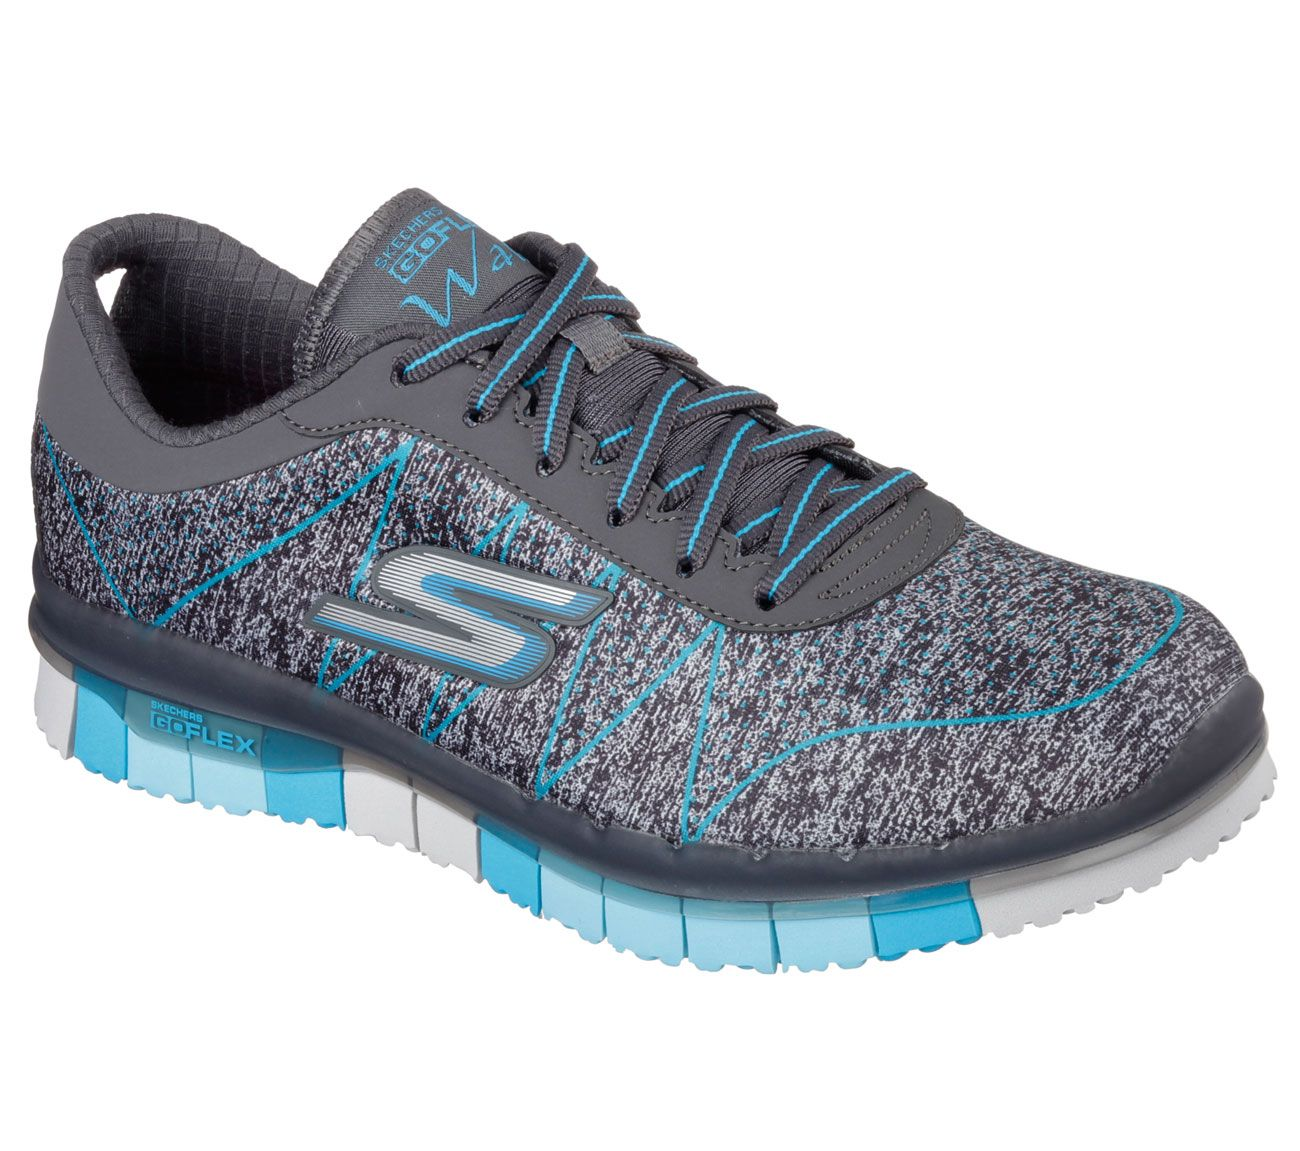 071b95f945ff Buy SKECHERS Skechers GO FLEX Walk - AbilitySkechers Performance Shoes only   75.00